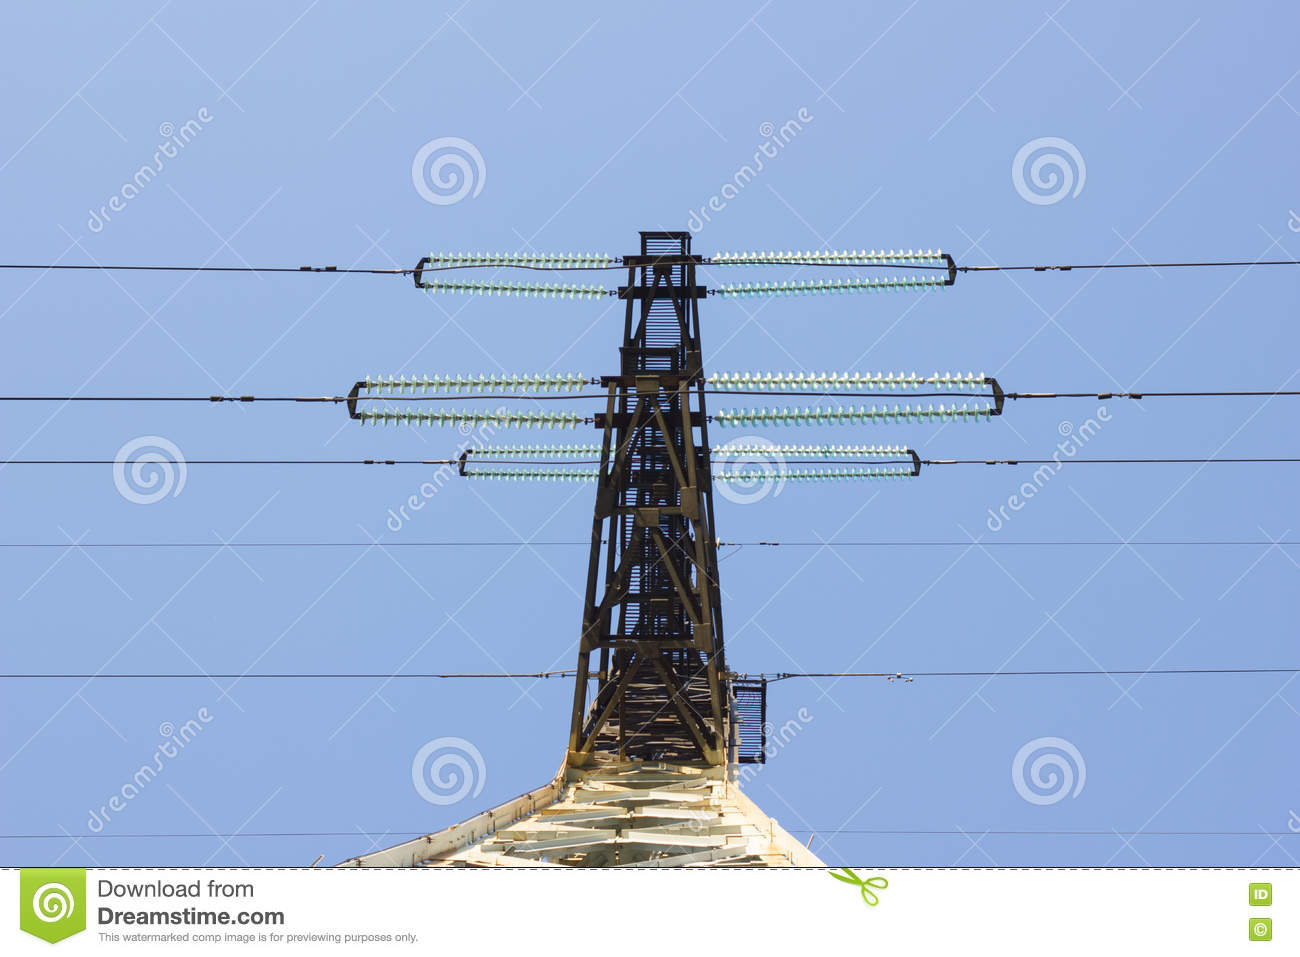 Electrical Insulator On The Wires Stock Image - Image of electric